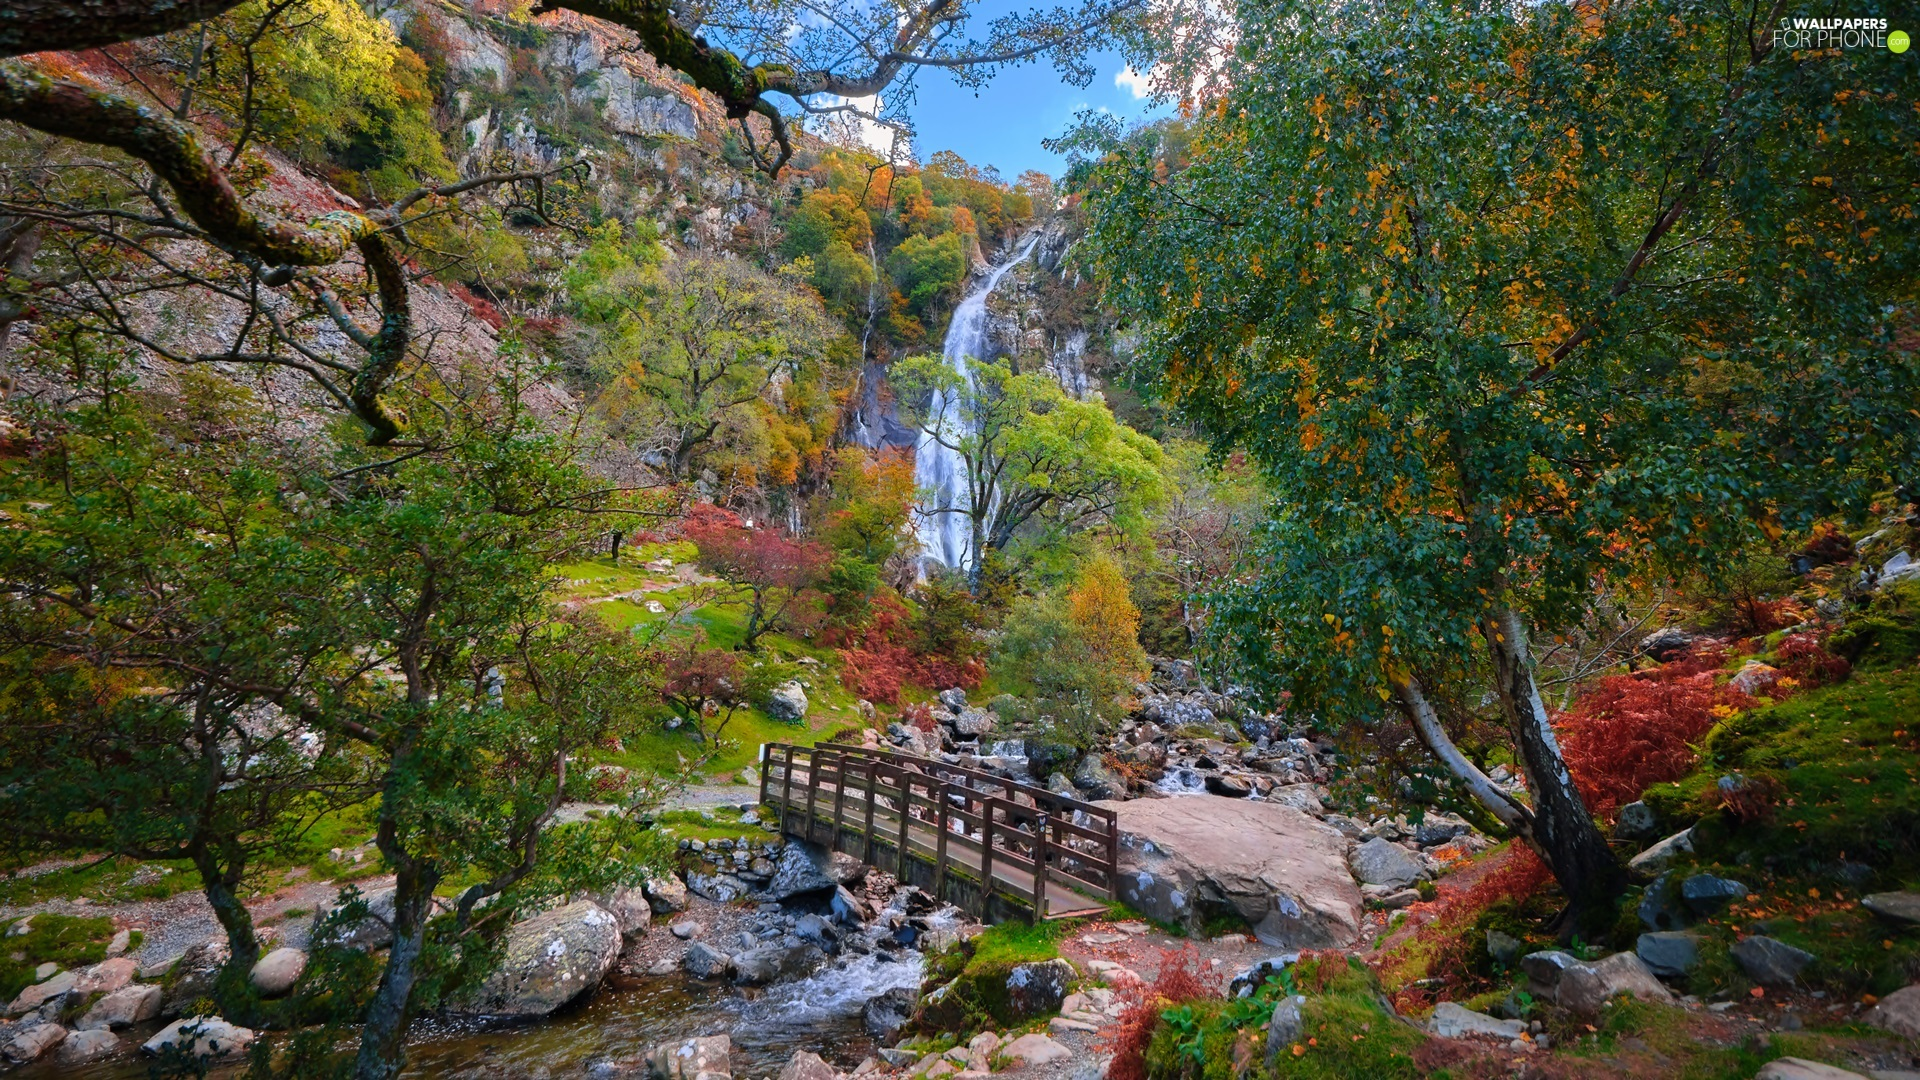 trees, bridges, Stones, waterfall, River, viewes, Mountains